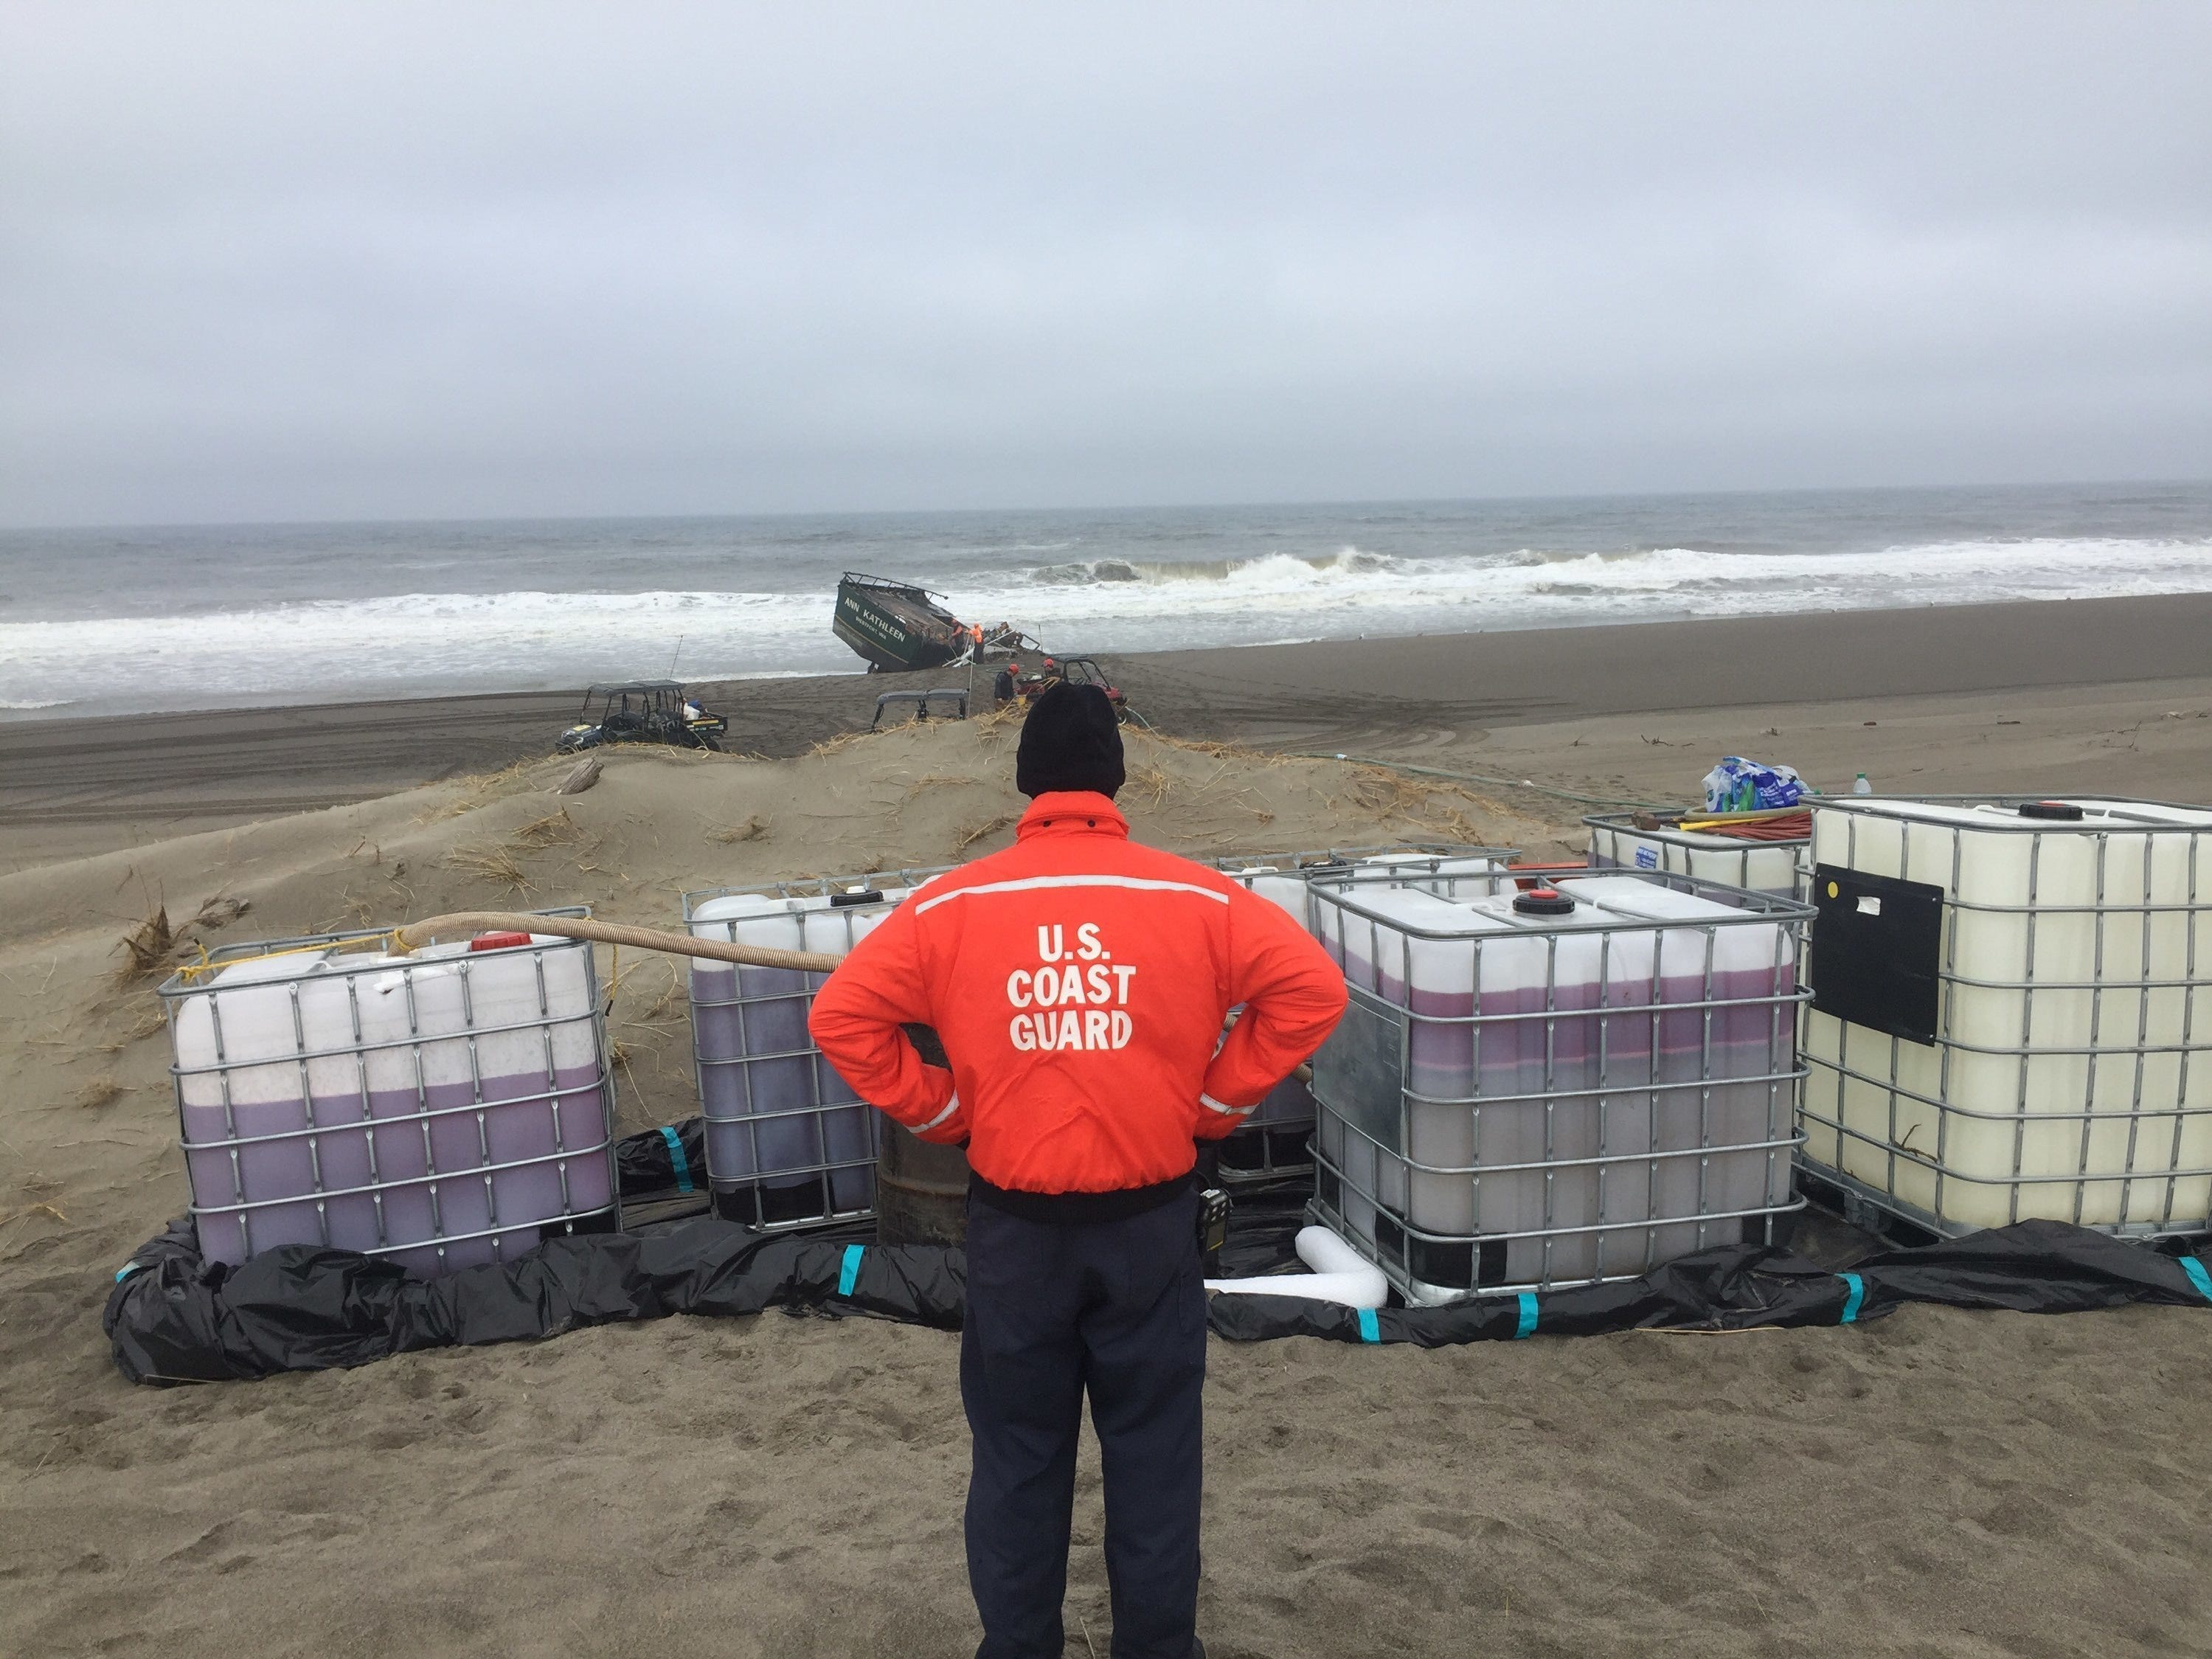 A Coast Guard member surveys six 275-gallon totes containing diesel fuel removed from the fishing vessel Ann Kathleen on a beach near Bandon, May 5, 2019.